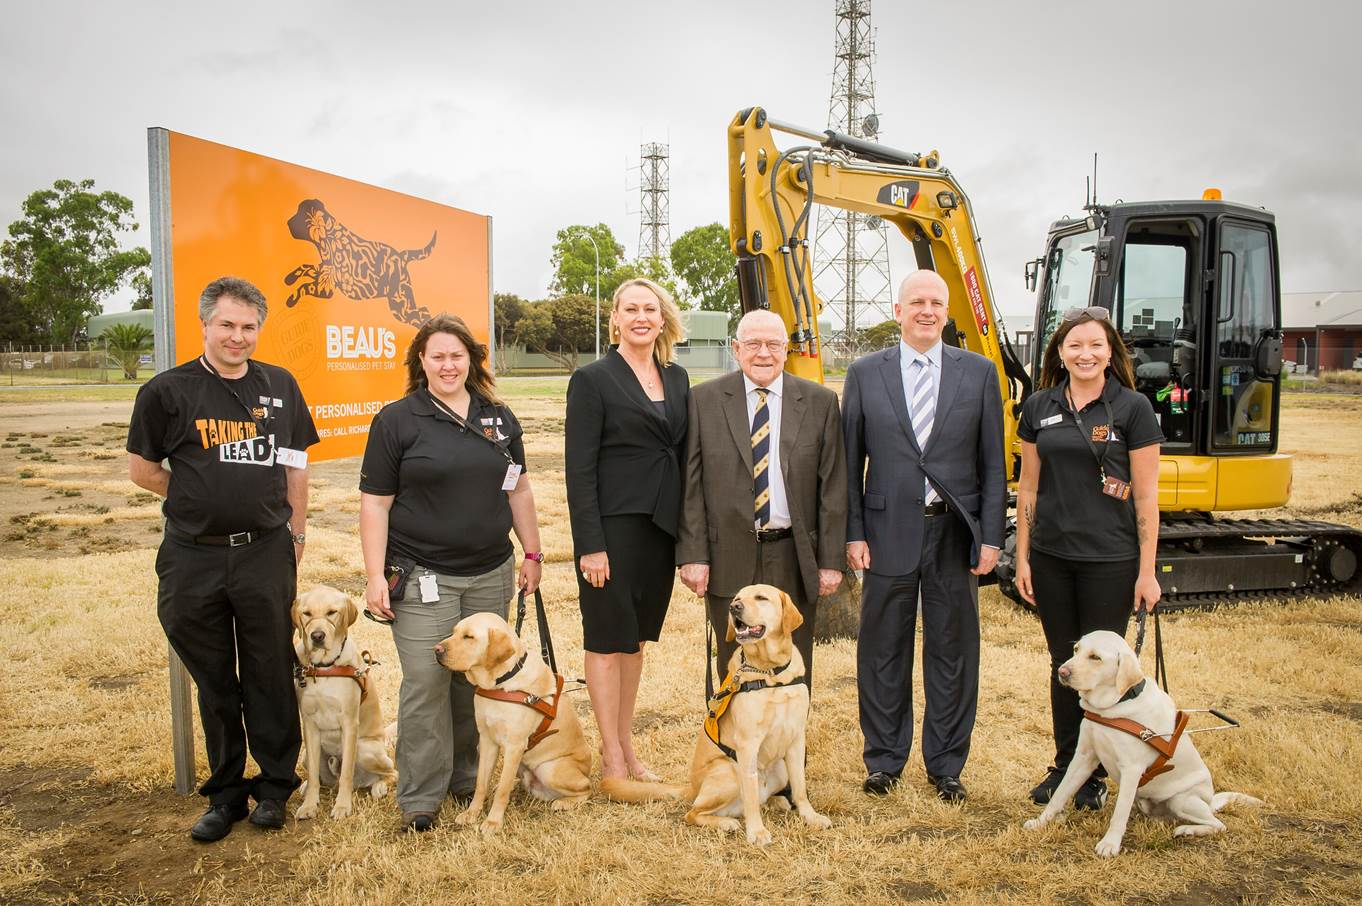 Celebrating the ground breaking. Guide Dogs staff with CEO Kate Thiele, Chairman Frank Beauchamp and Chairman Joe Thorp